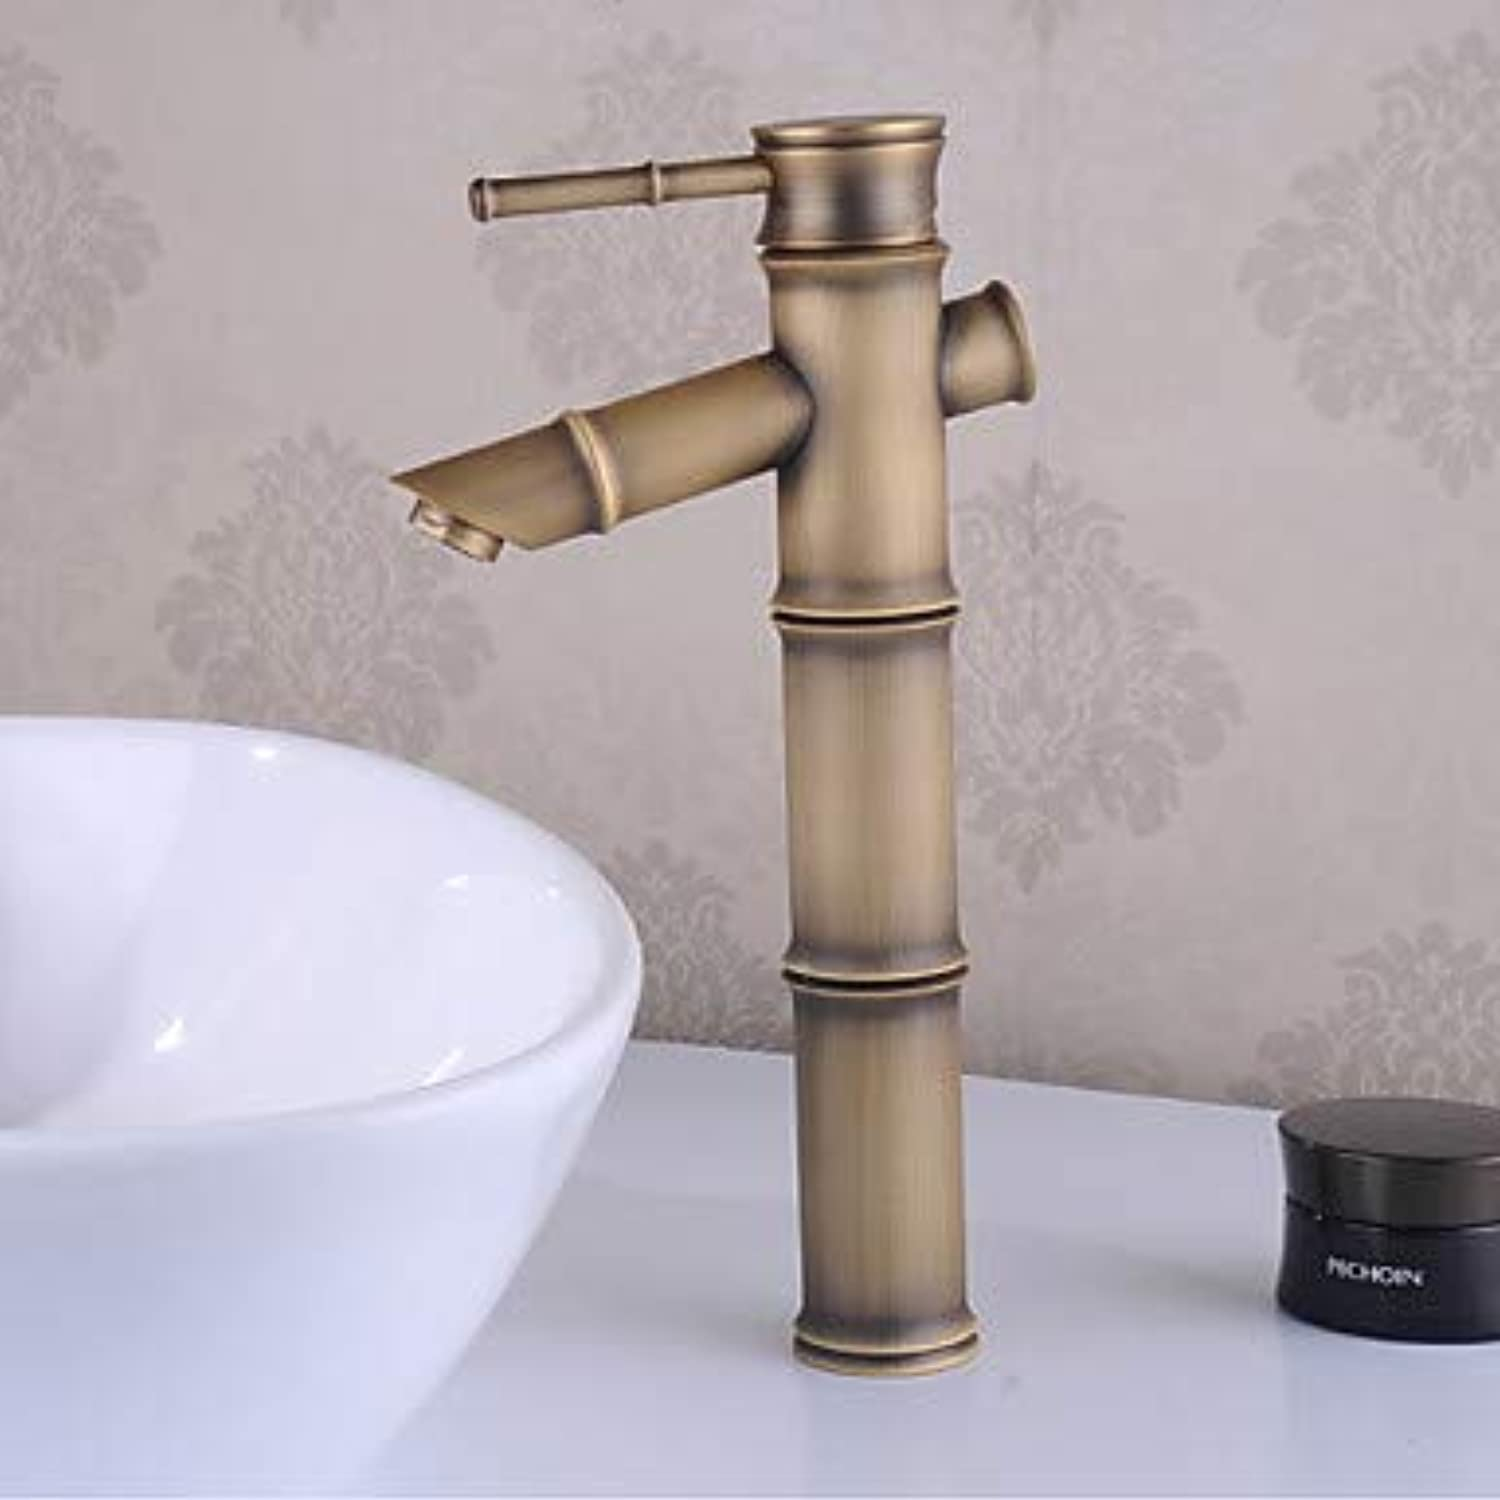 Mangeoo Bathroom Sink Faucet - Waterfall Antique Brass Centerset Single Handle One Holebath Taps